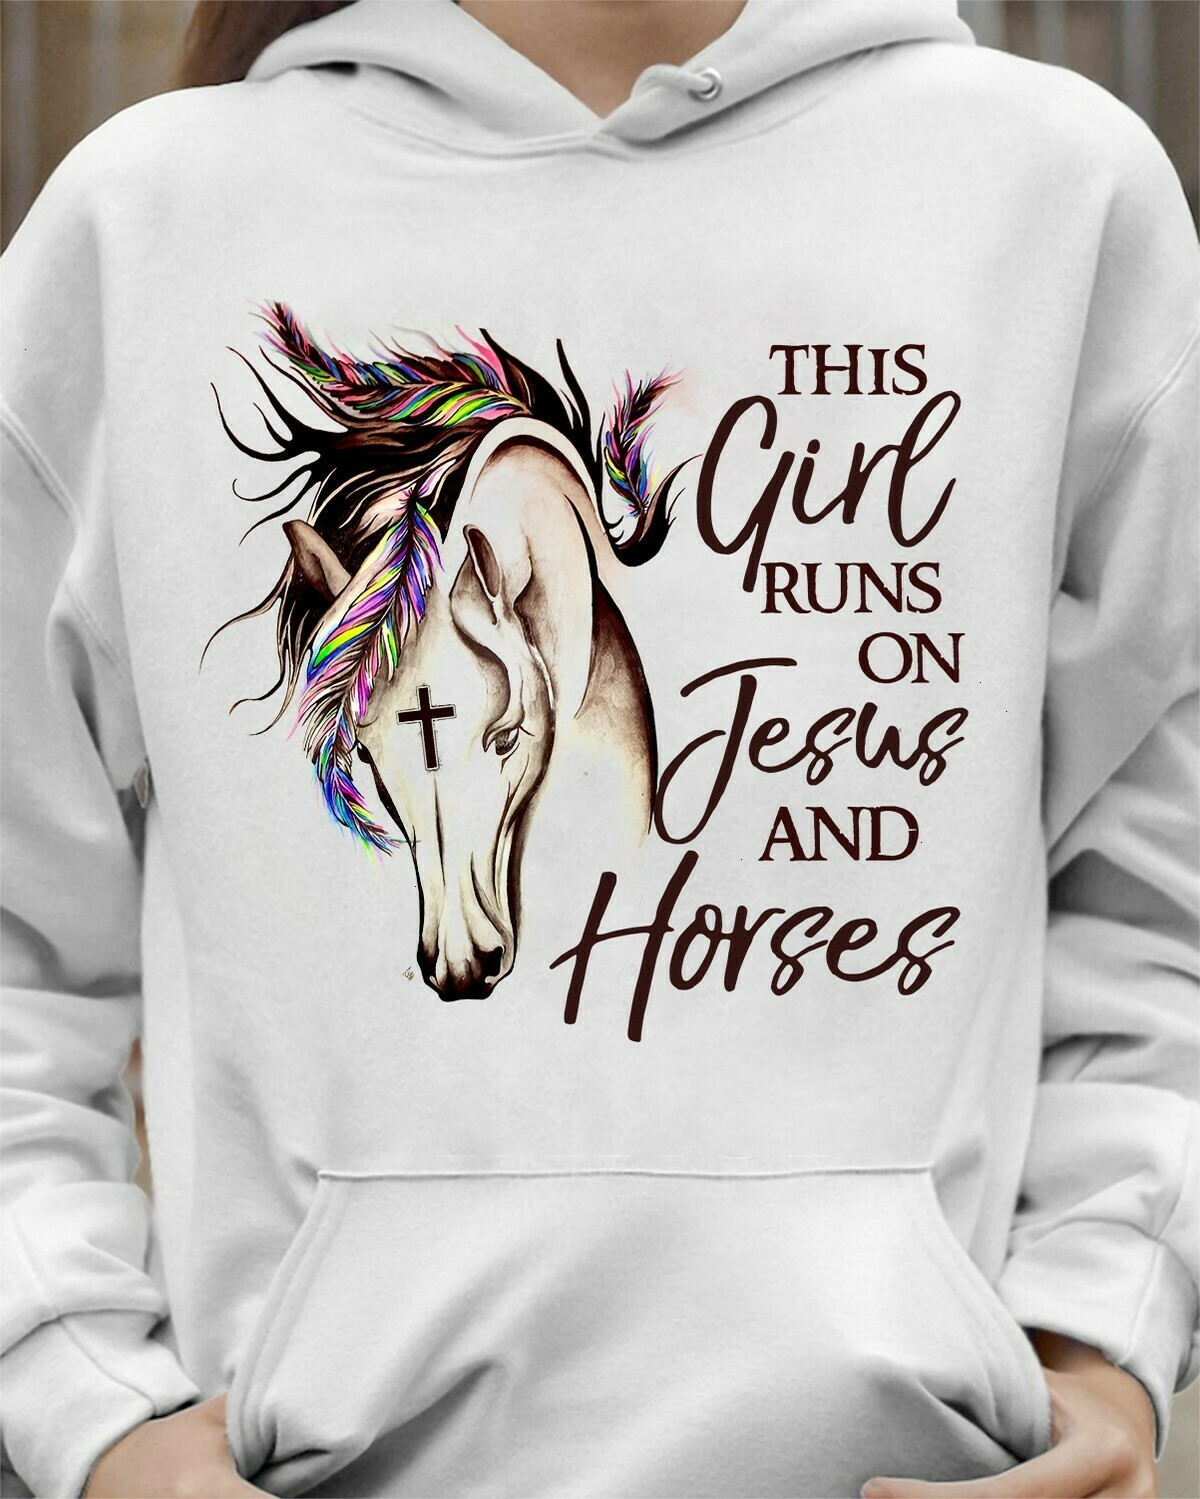 Horses Make Me Happy You Not So Much For Horse Lovers Animal Lover Unisex T-Shirt Hoodie Sweatshirt Sweater Plus Size for Ladies Women Men Kids Youth Gifts Tee Jolly Family Gifts